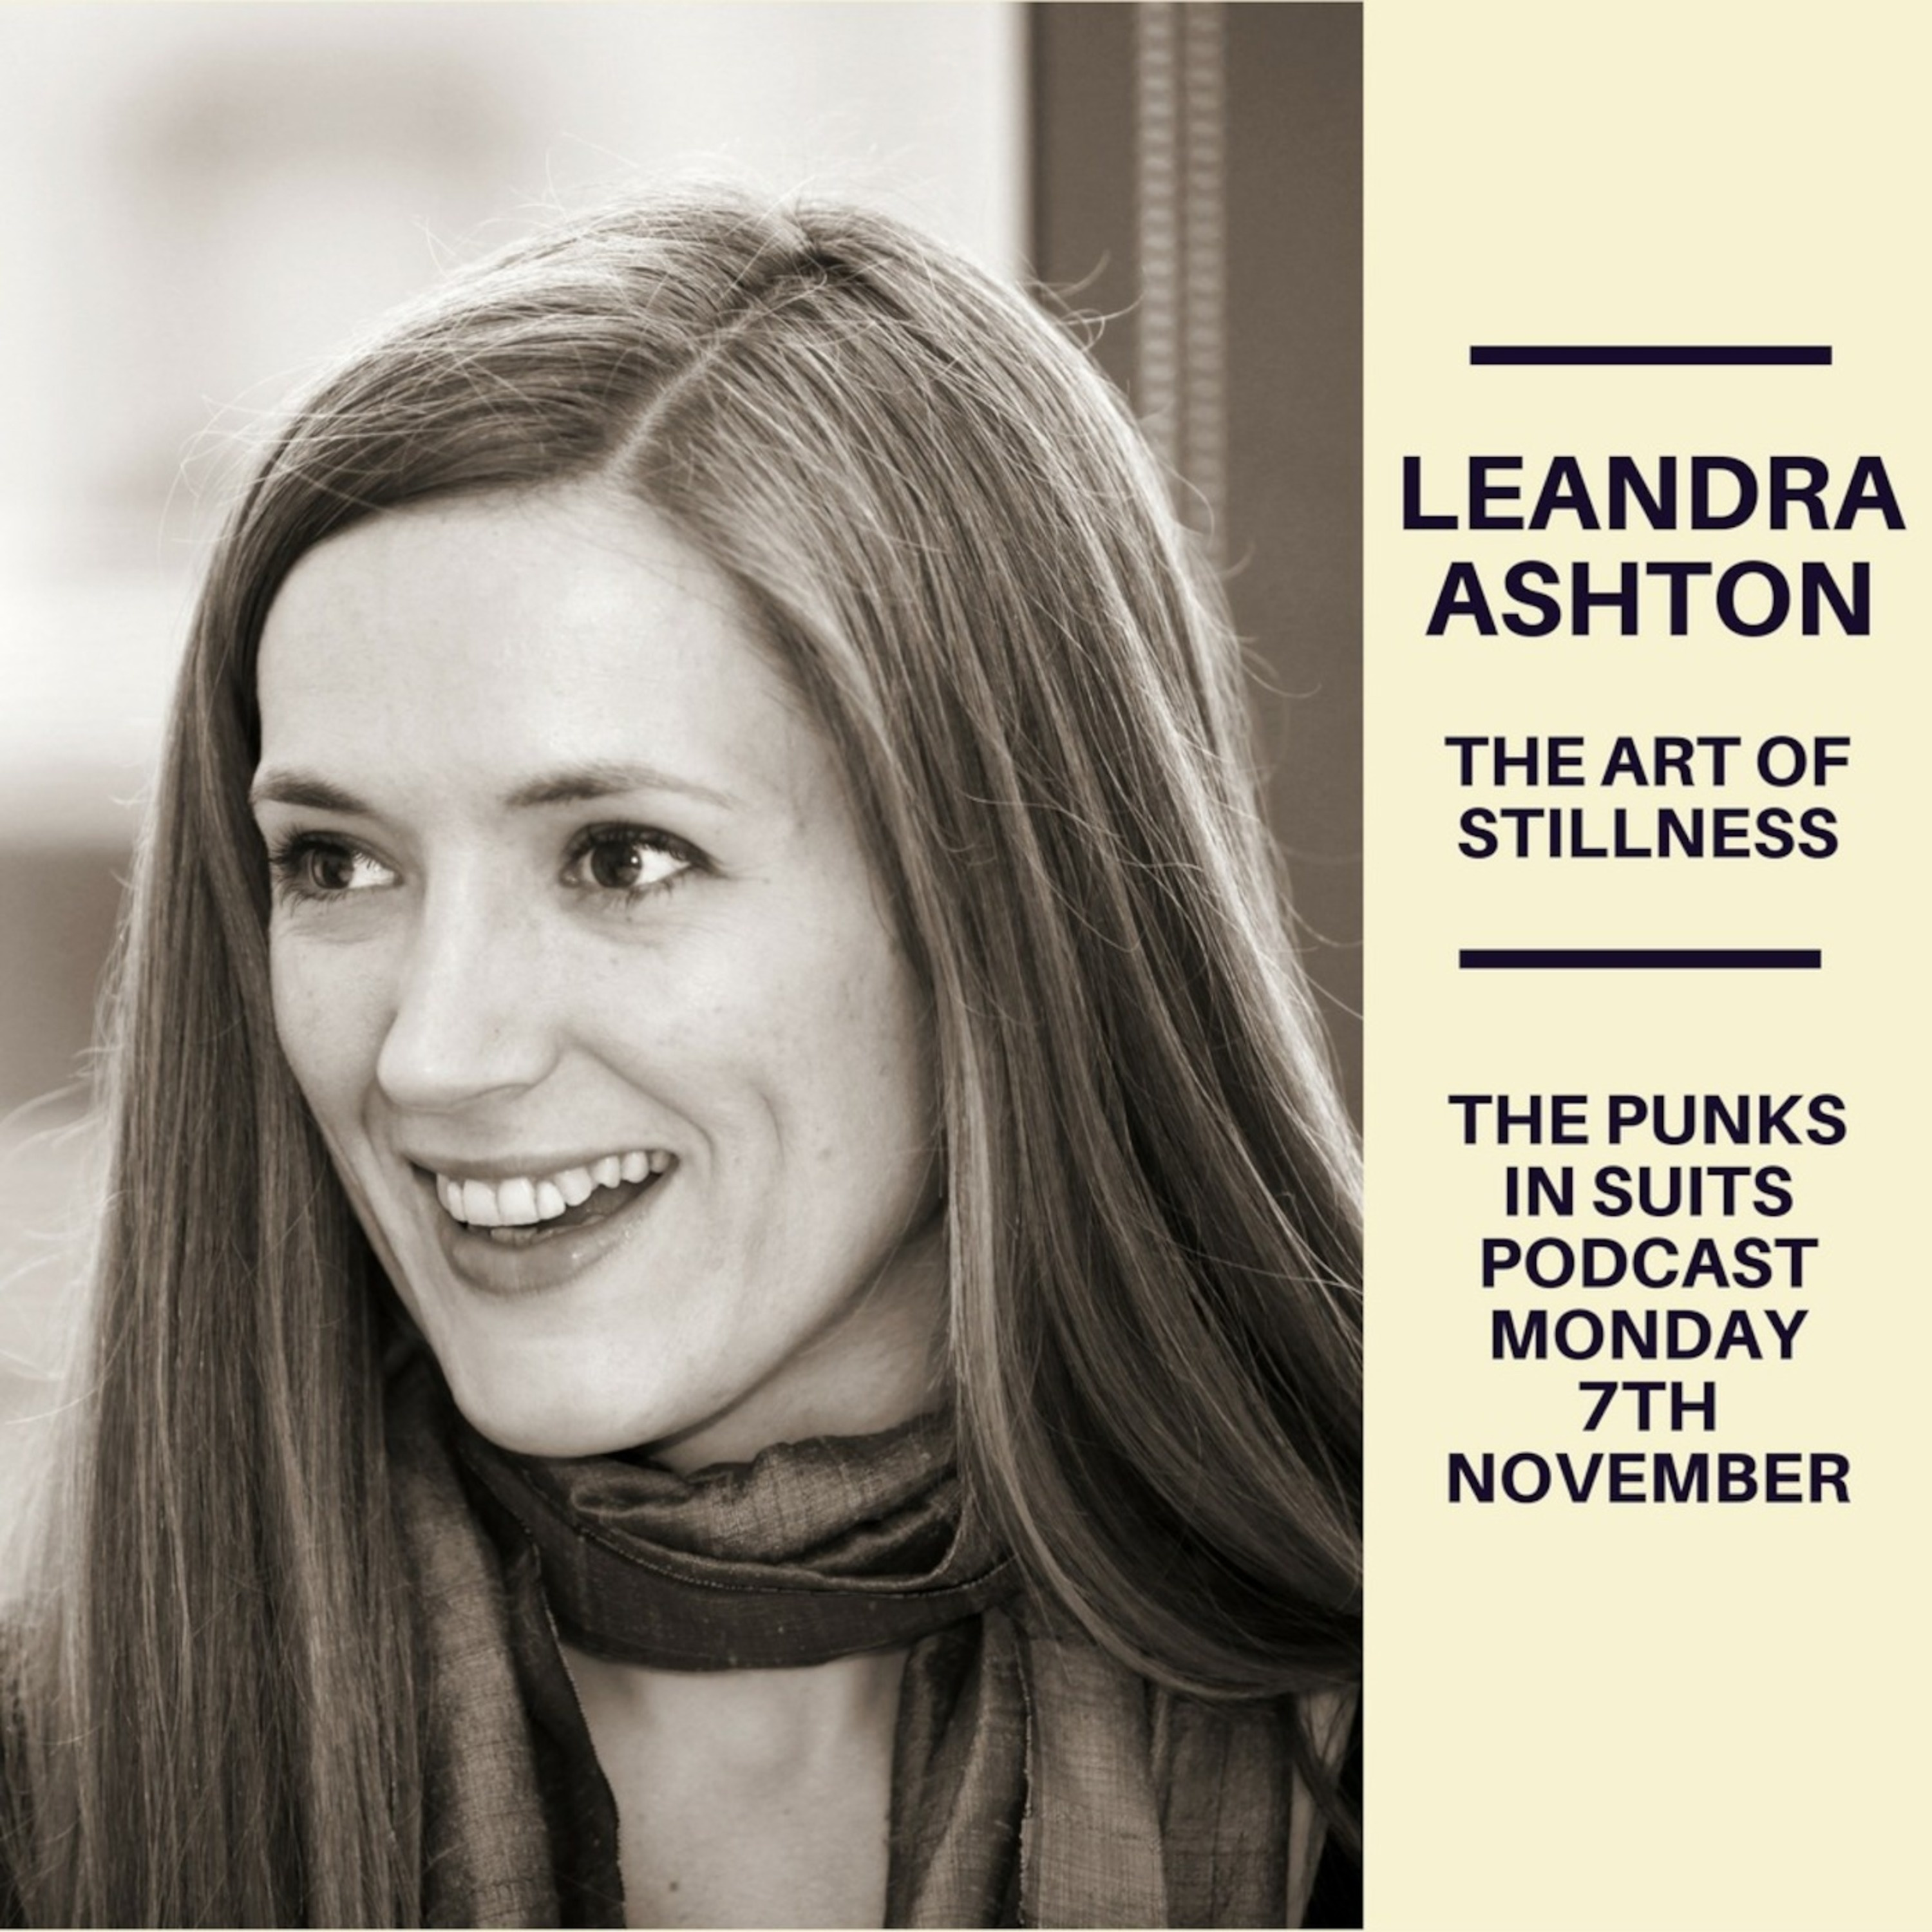 Episode 5: Leandra Ashton and the Art of Stillness